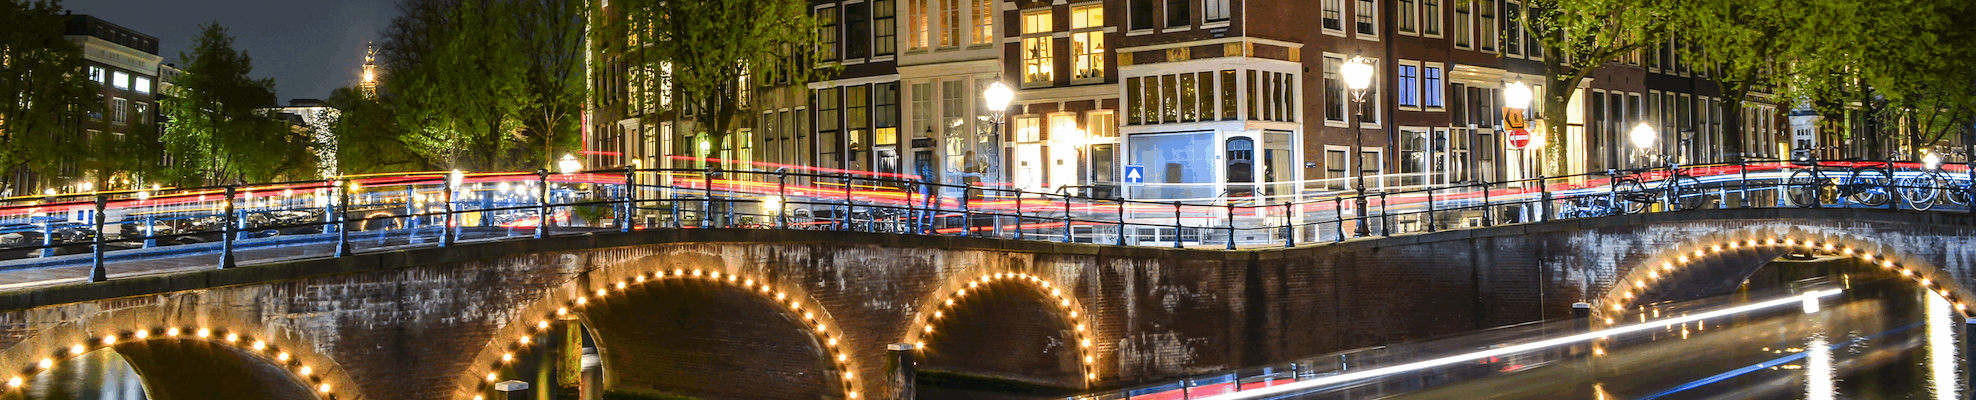 Kurztrip zum Amsterdam Light Festival - 1 Tag (Special Offer...